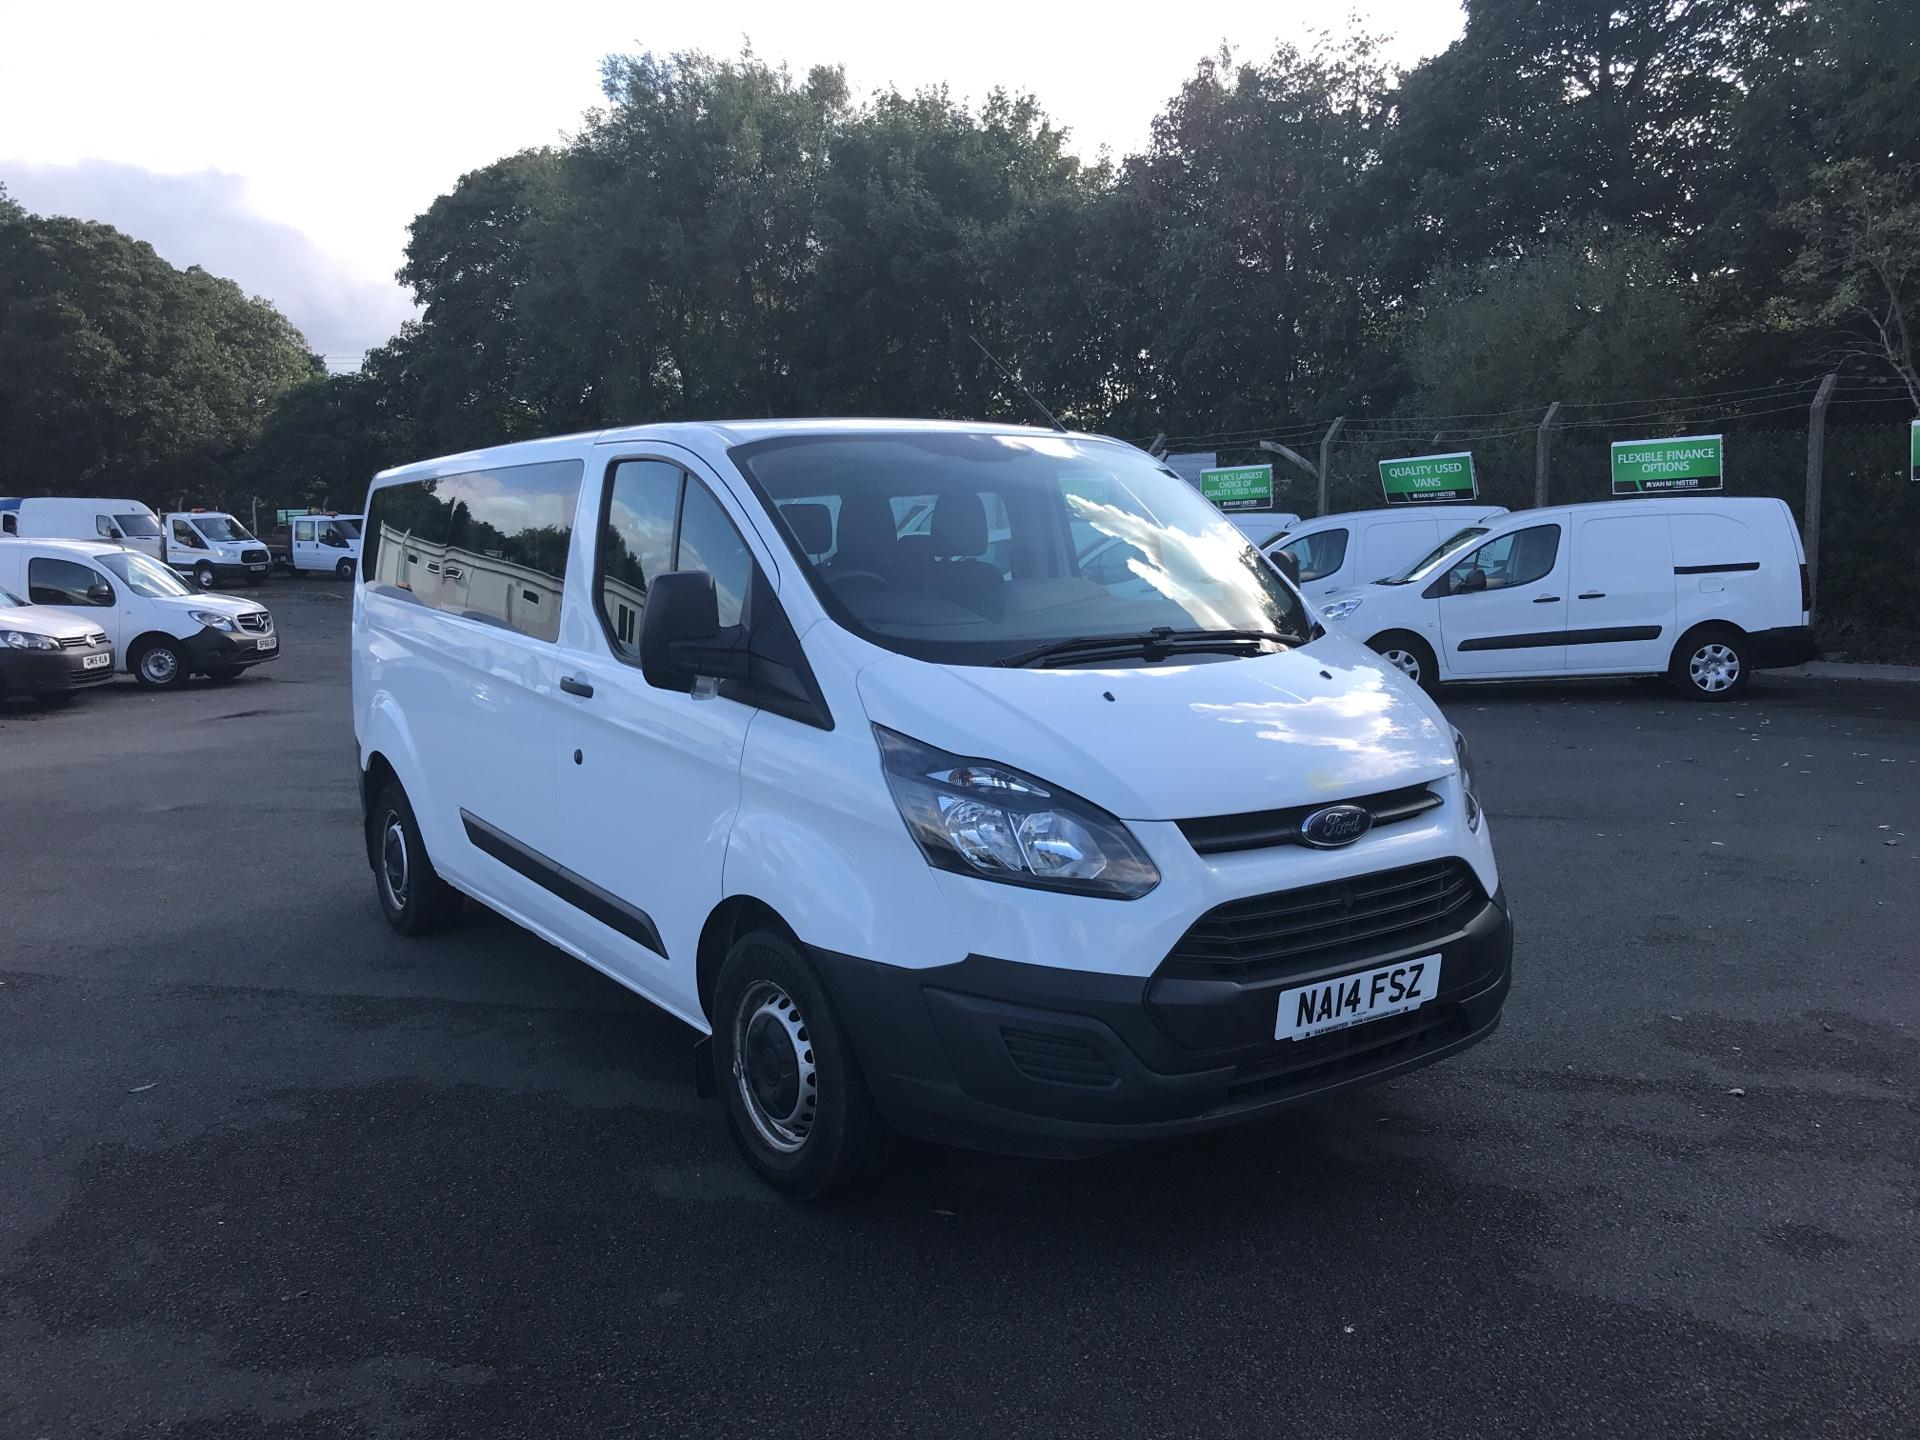 2014 Ford Transit Custom 310  L2 DIESEL FWD 2.2 TDCI 125PS LOW ROOF KOMBI VAN EURO 5 *VALUE RANGE VEHICLE - CONDITION REFLECTED IN PRICE* (NA14FSZ)